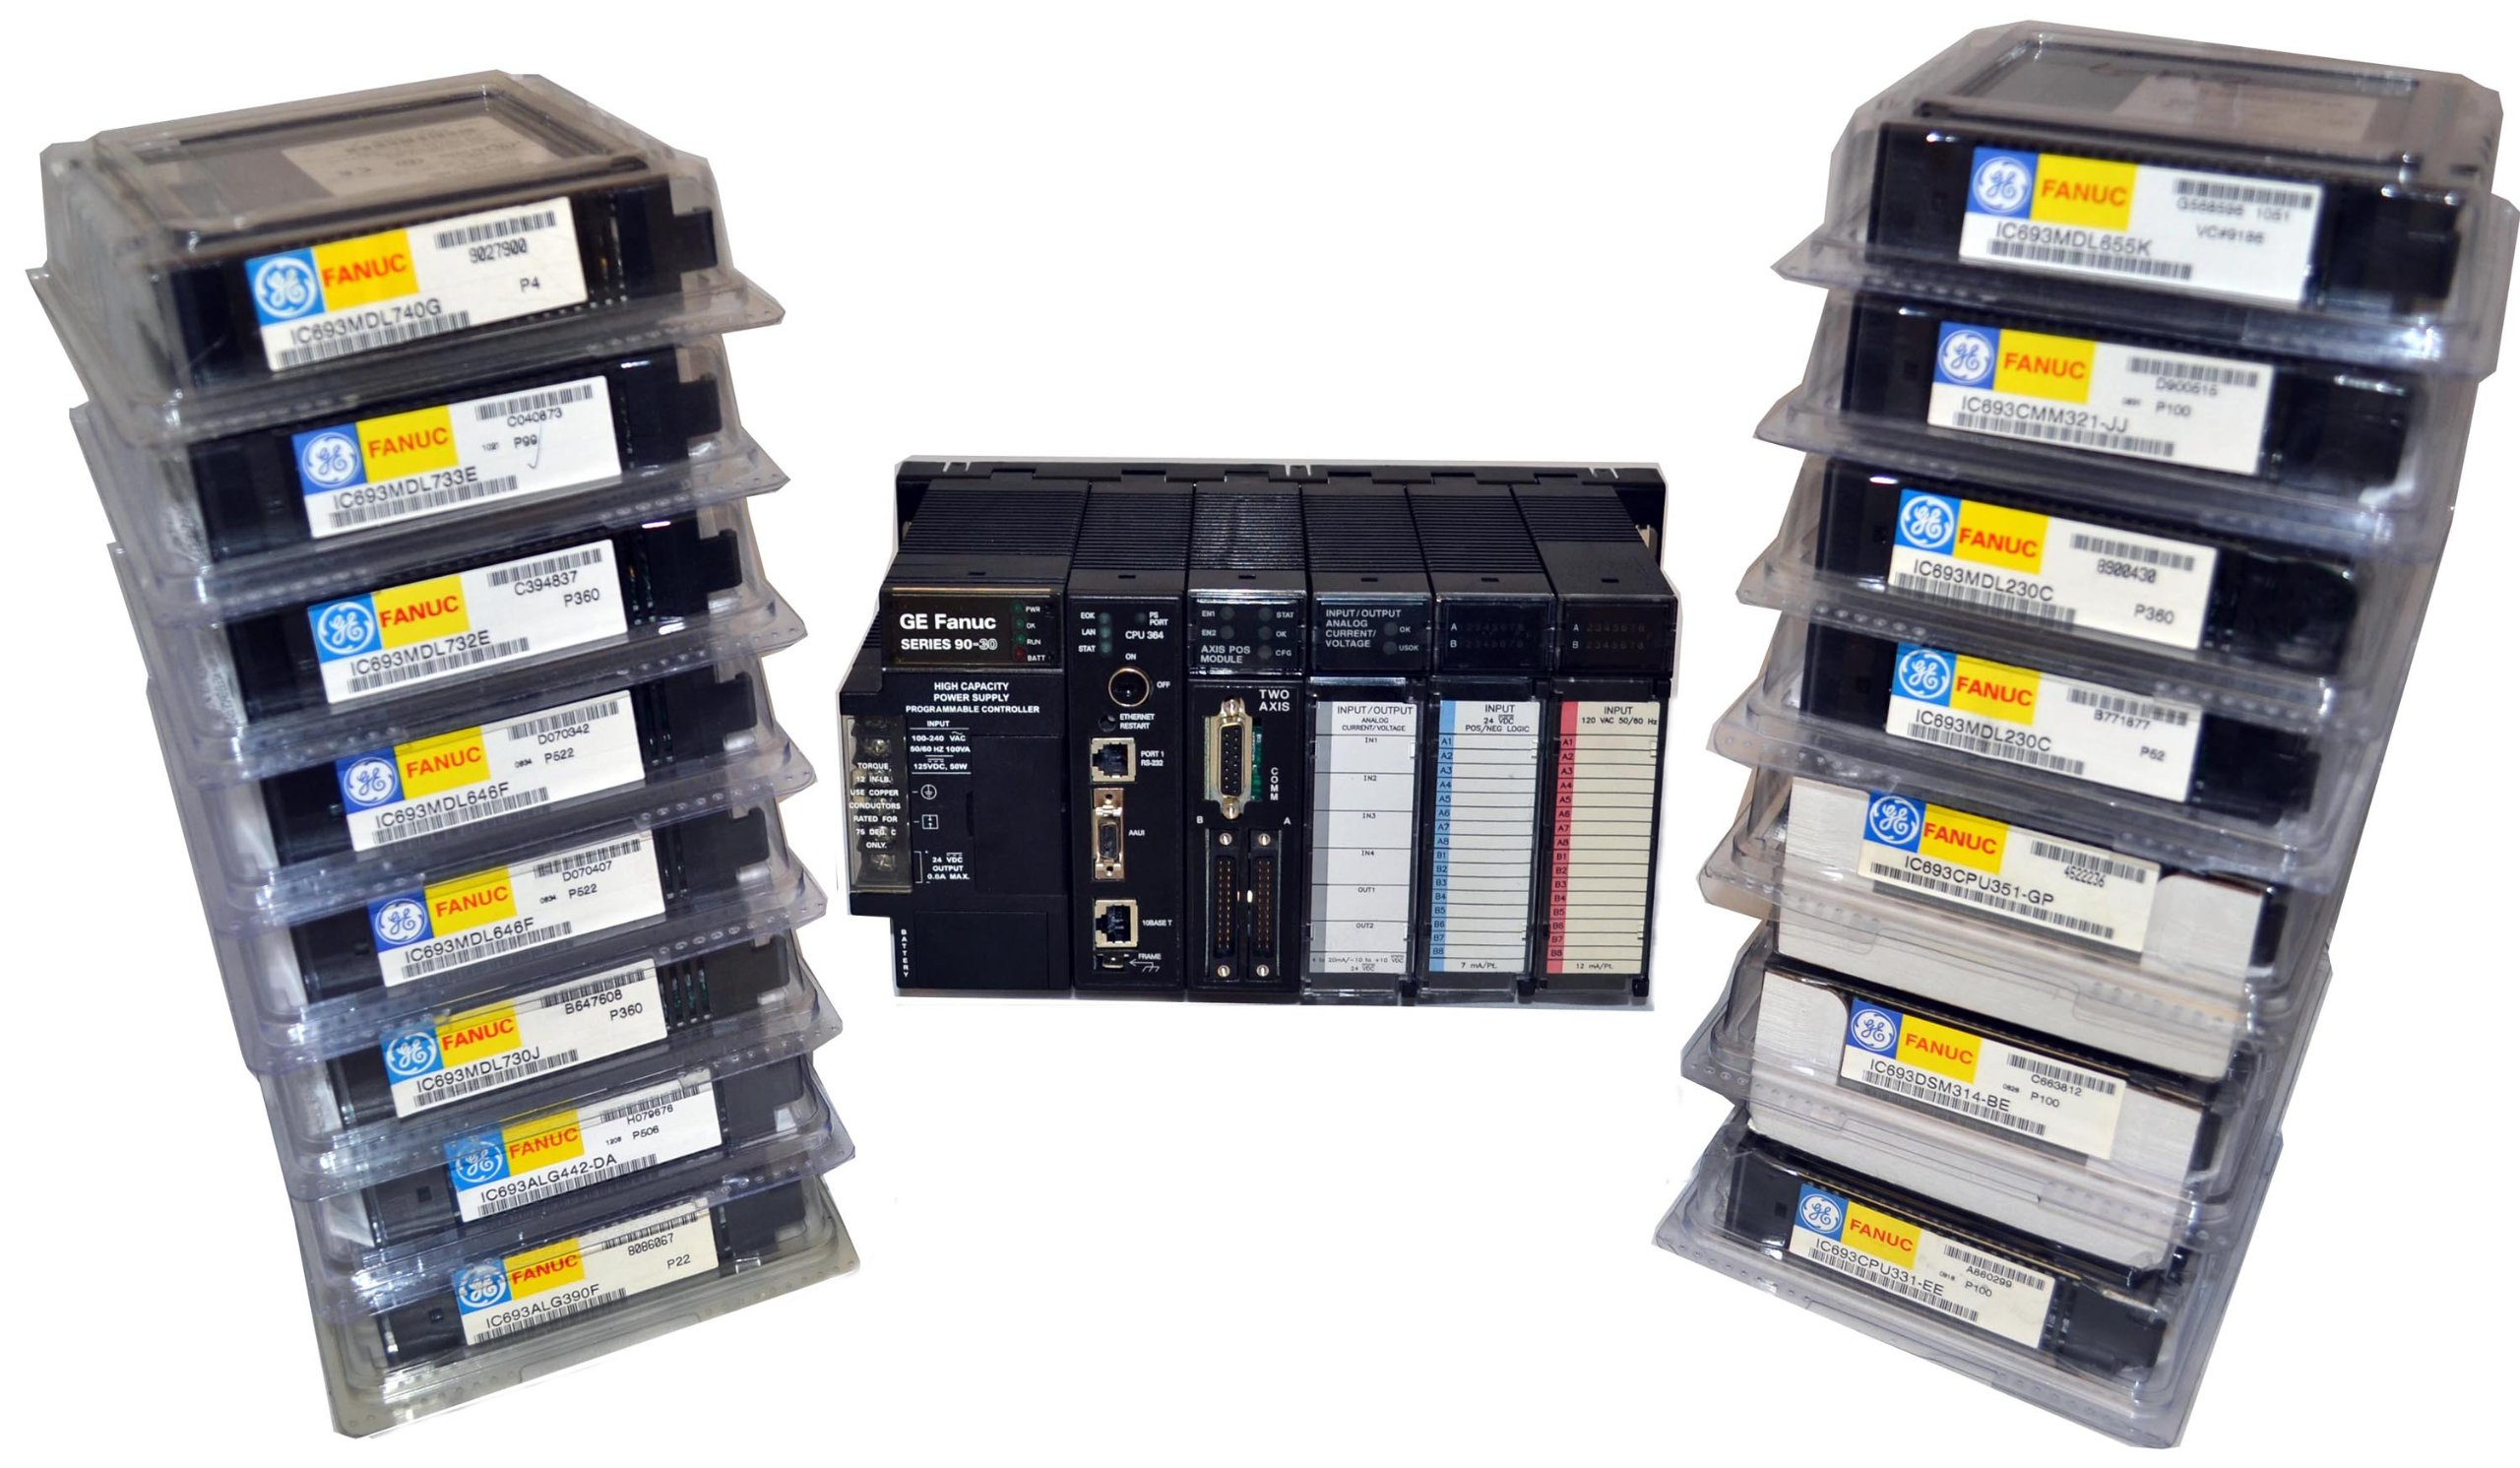 *New* GE Fanuc 90-30 PLC - IC693MDL940 by PDF Supply - Relay Output, 2 Amp (16 Points)